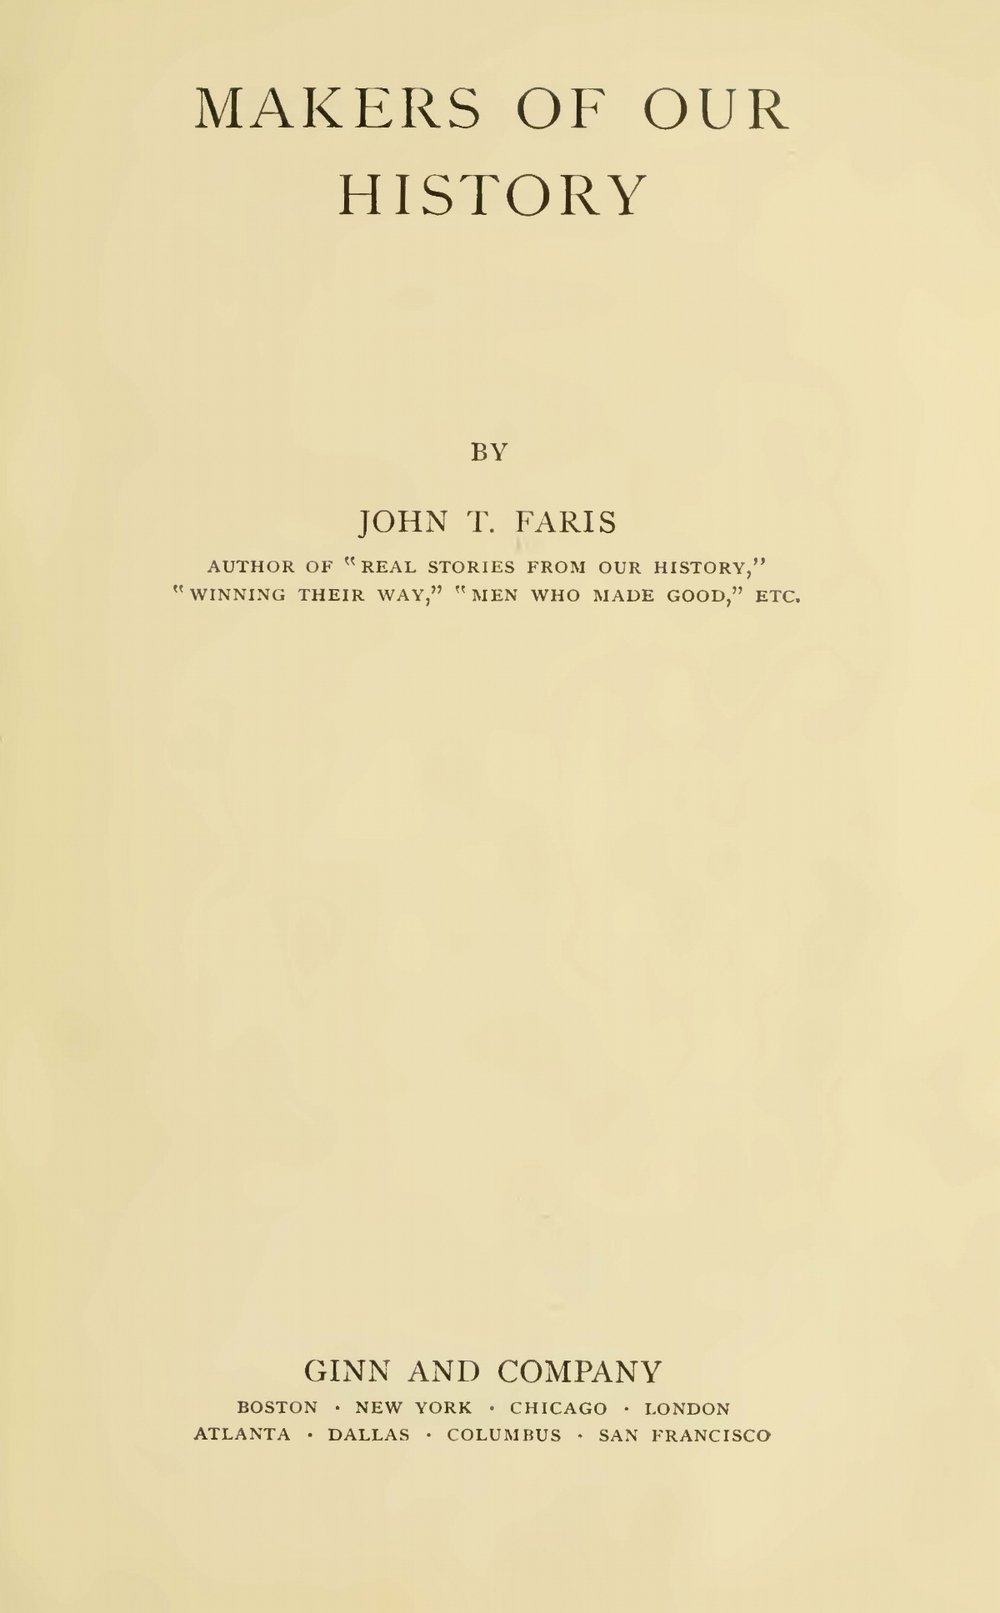 Faris, John Thomson, Makers of Our History Title Page.jpg